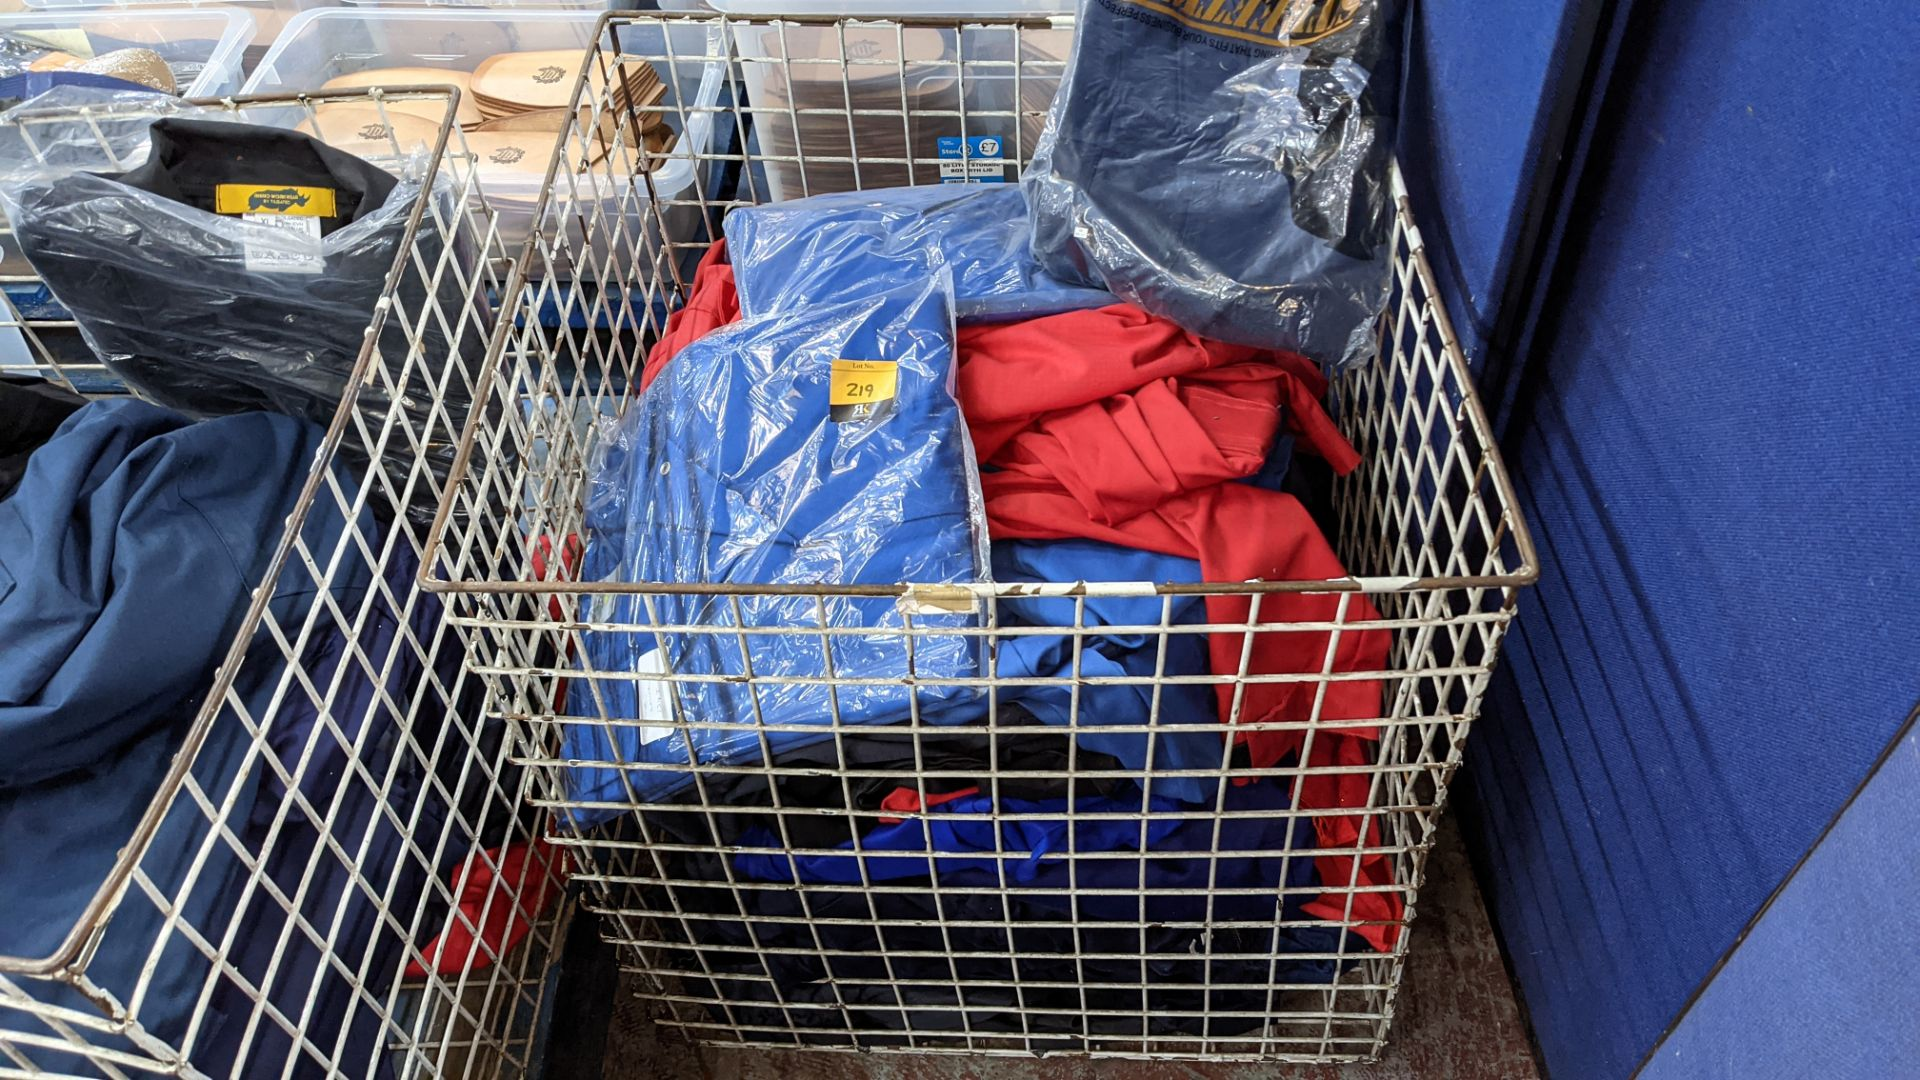 The contents of a cage of assorted work clothing. NB cage excluded